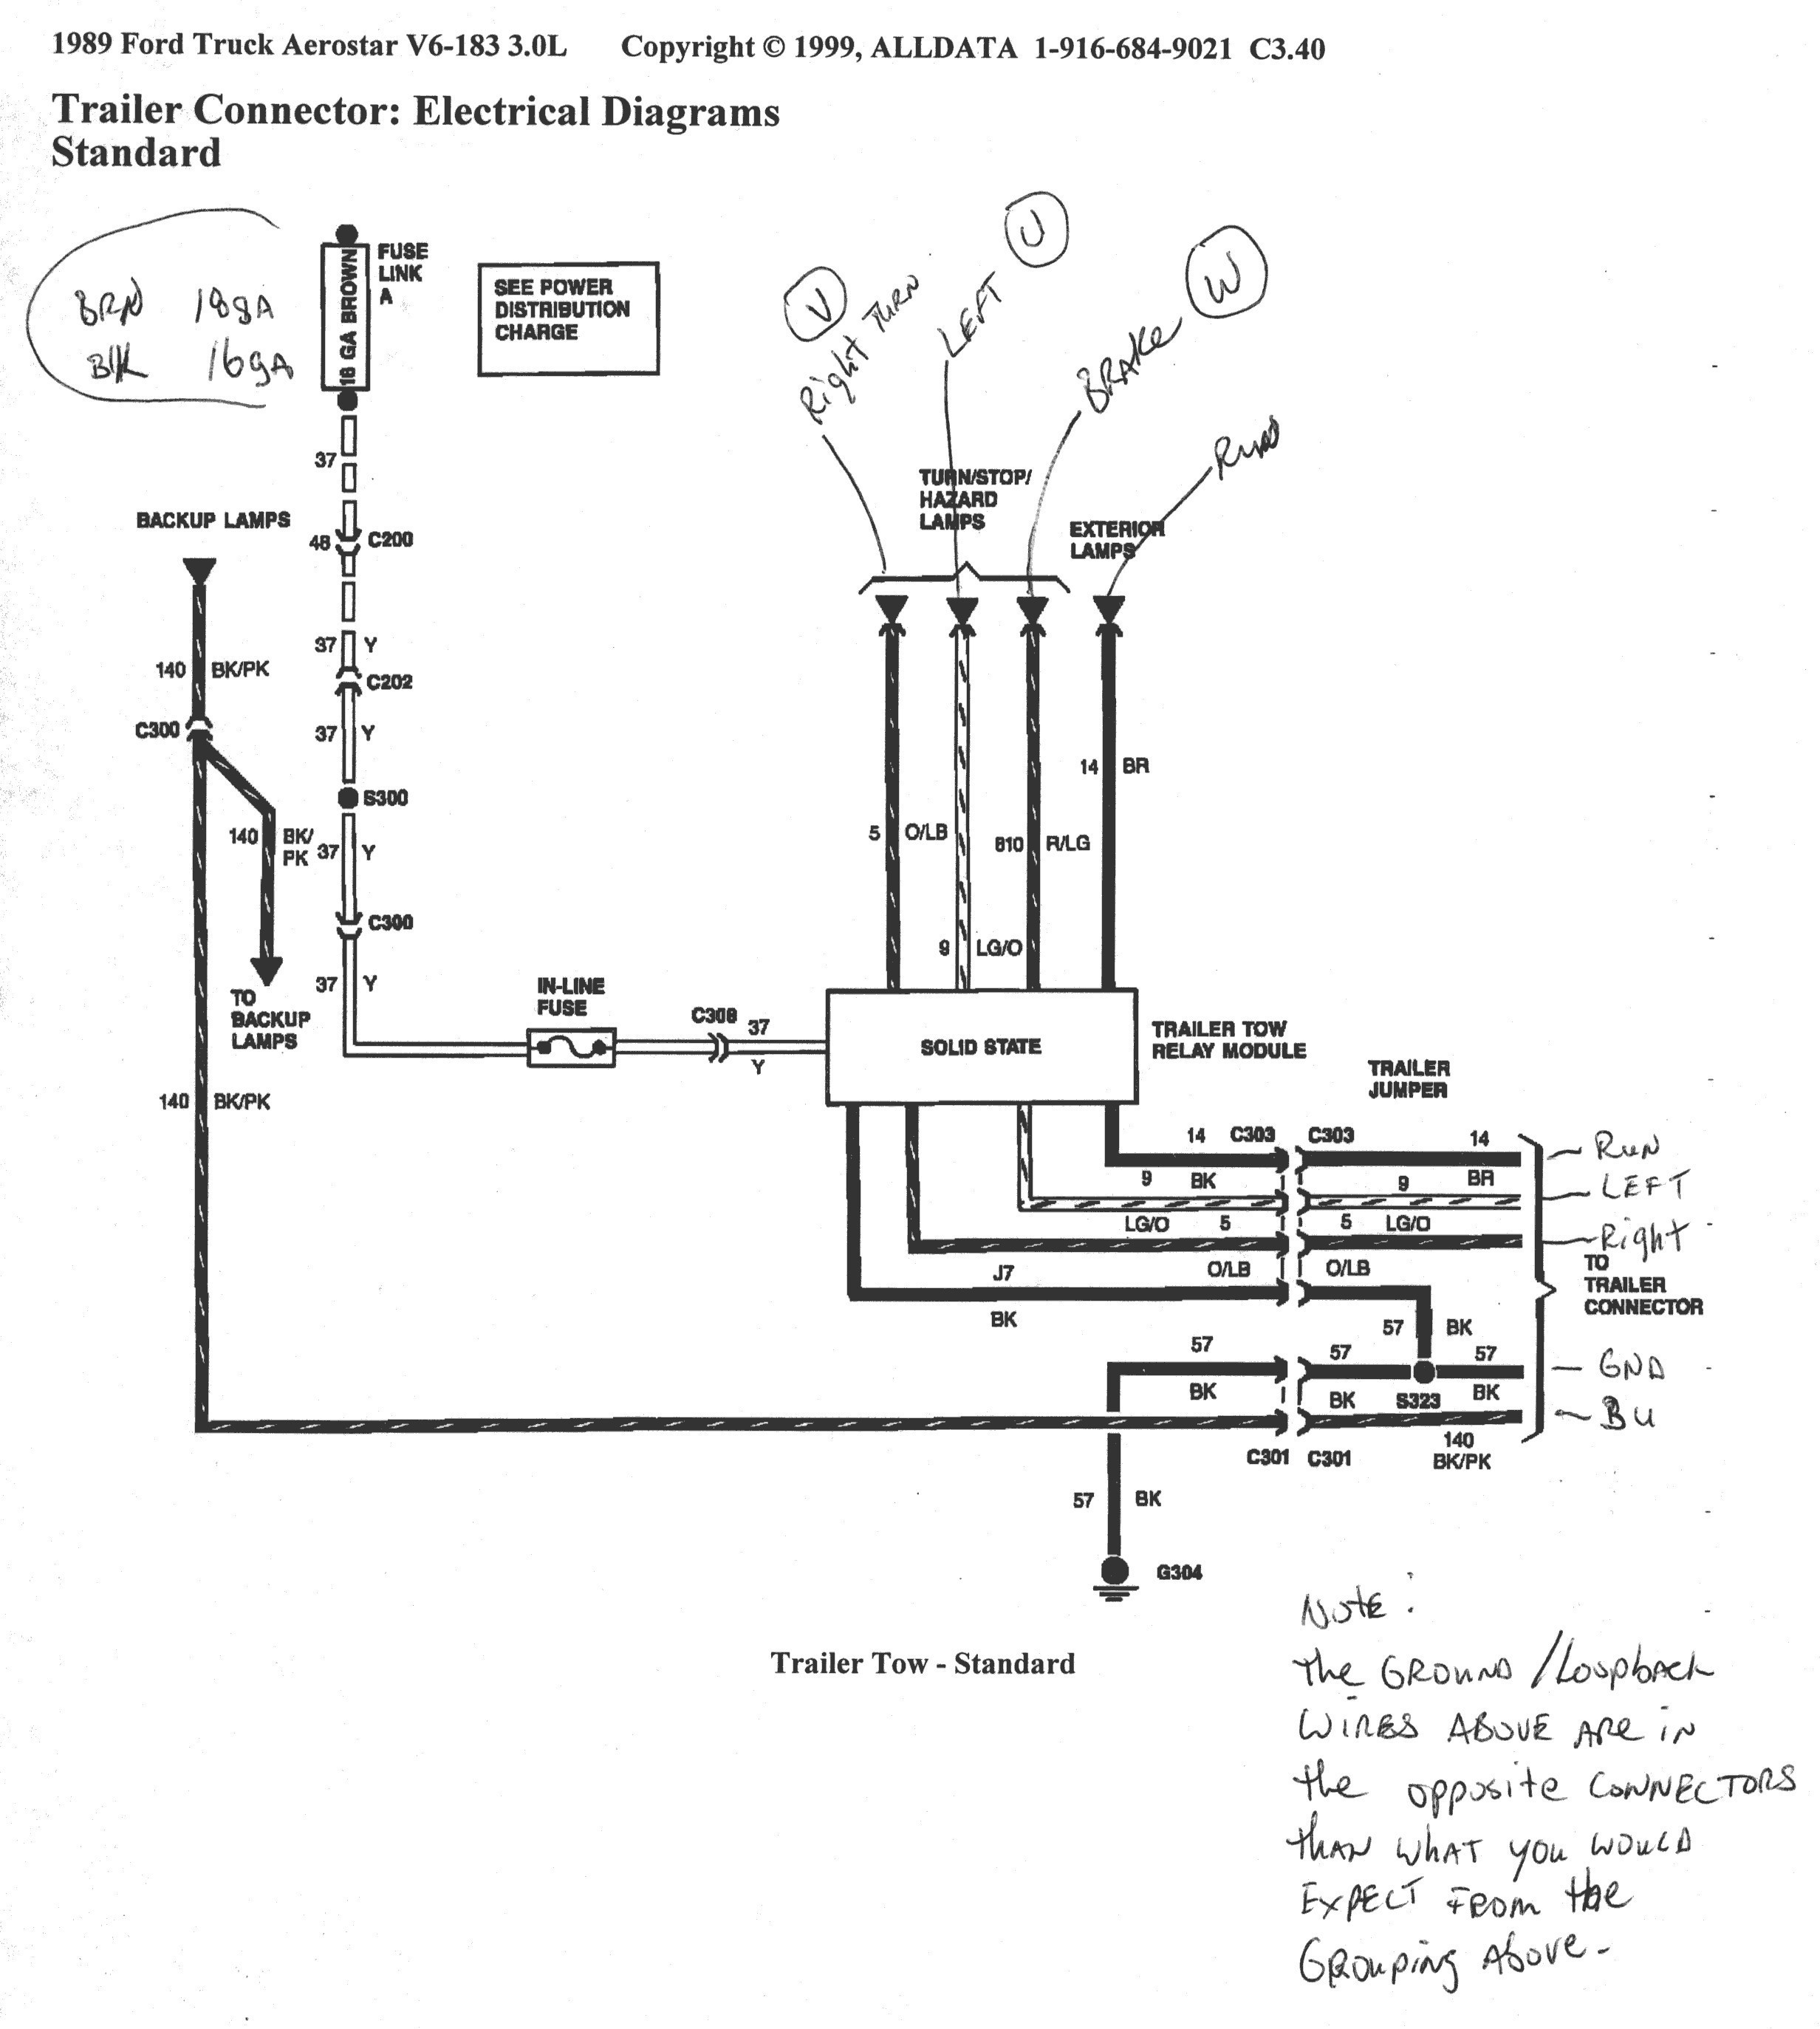 1990 Ford F350 Tail Light Wiring Diagram - 1964 Impala Fuse Box for Wiring  Diagram SchematicsWiring Diagram Schematics